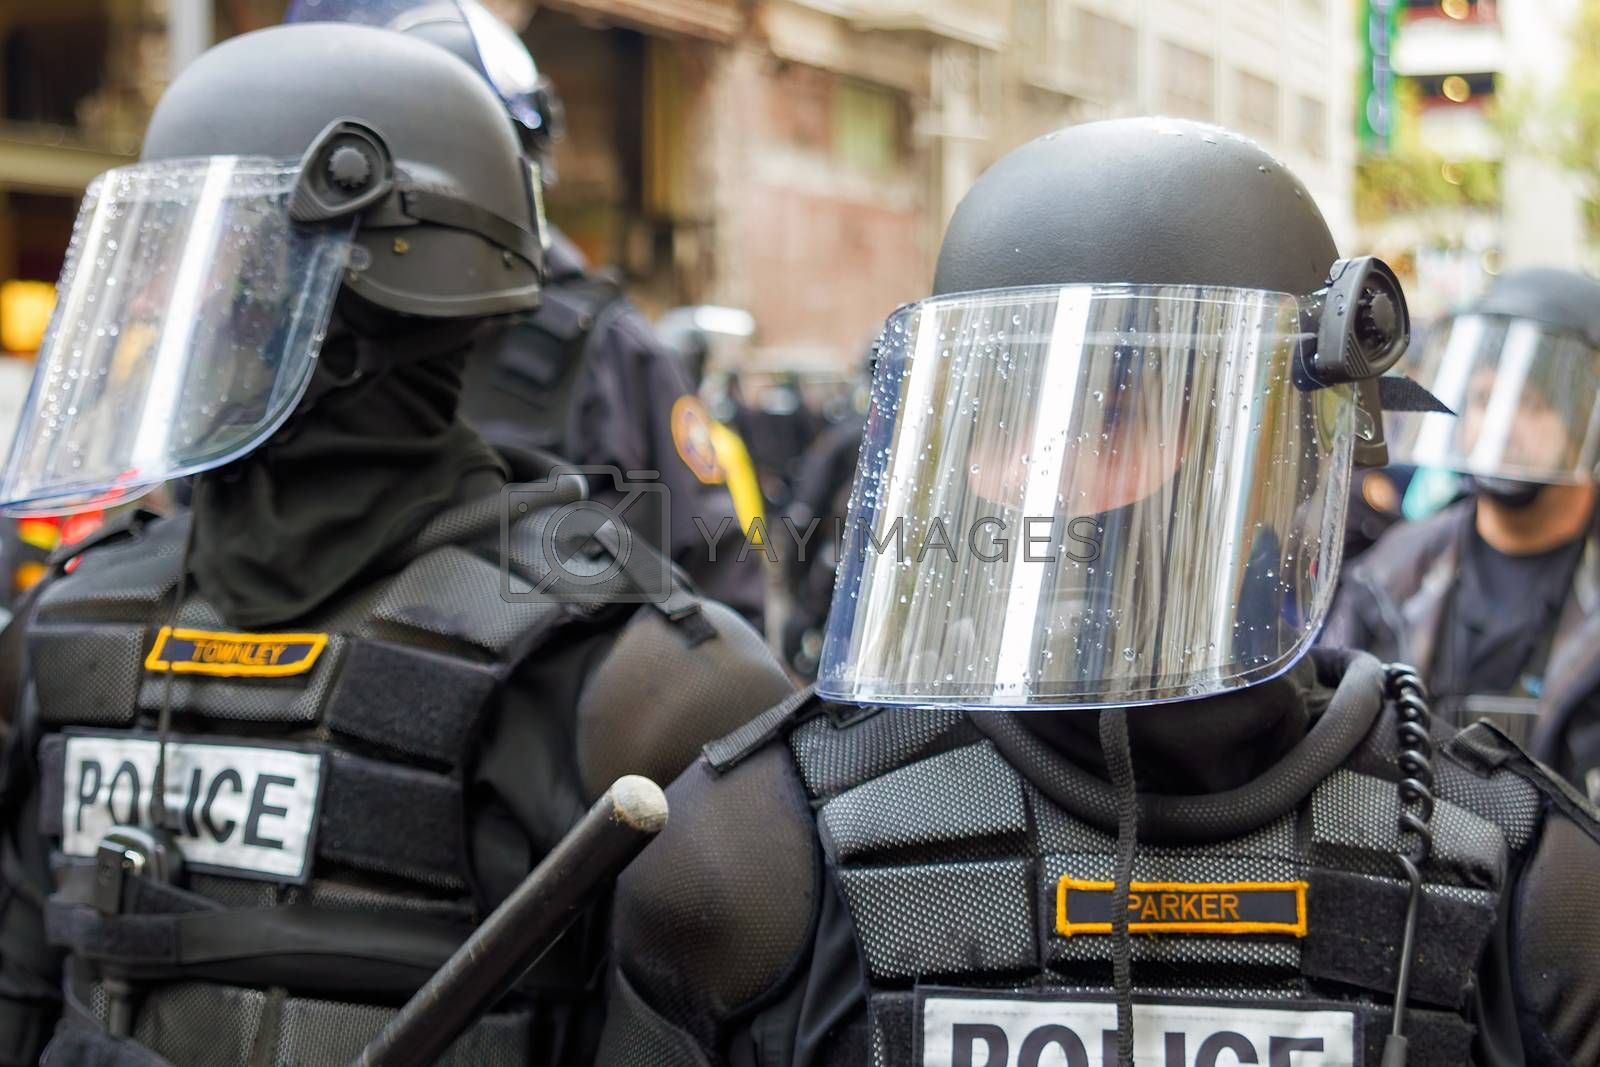 PORTLAND, OREGON - NOVEMBER 17, 2011: Police in Riot Gears Closeup in Downtown Portland, Oregon during a Occupy Portland Protest Against Banks on the first anniversary of Occupy Wall Street